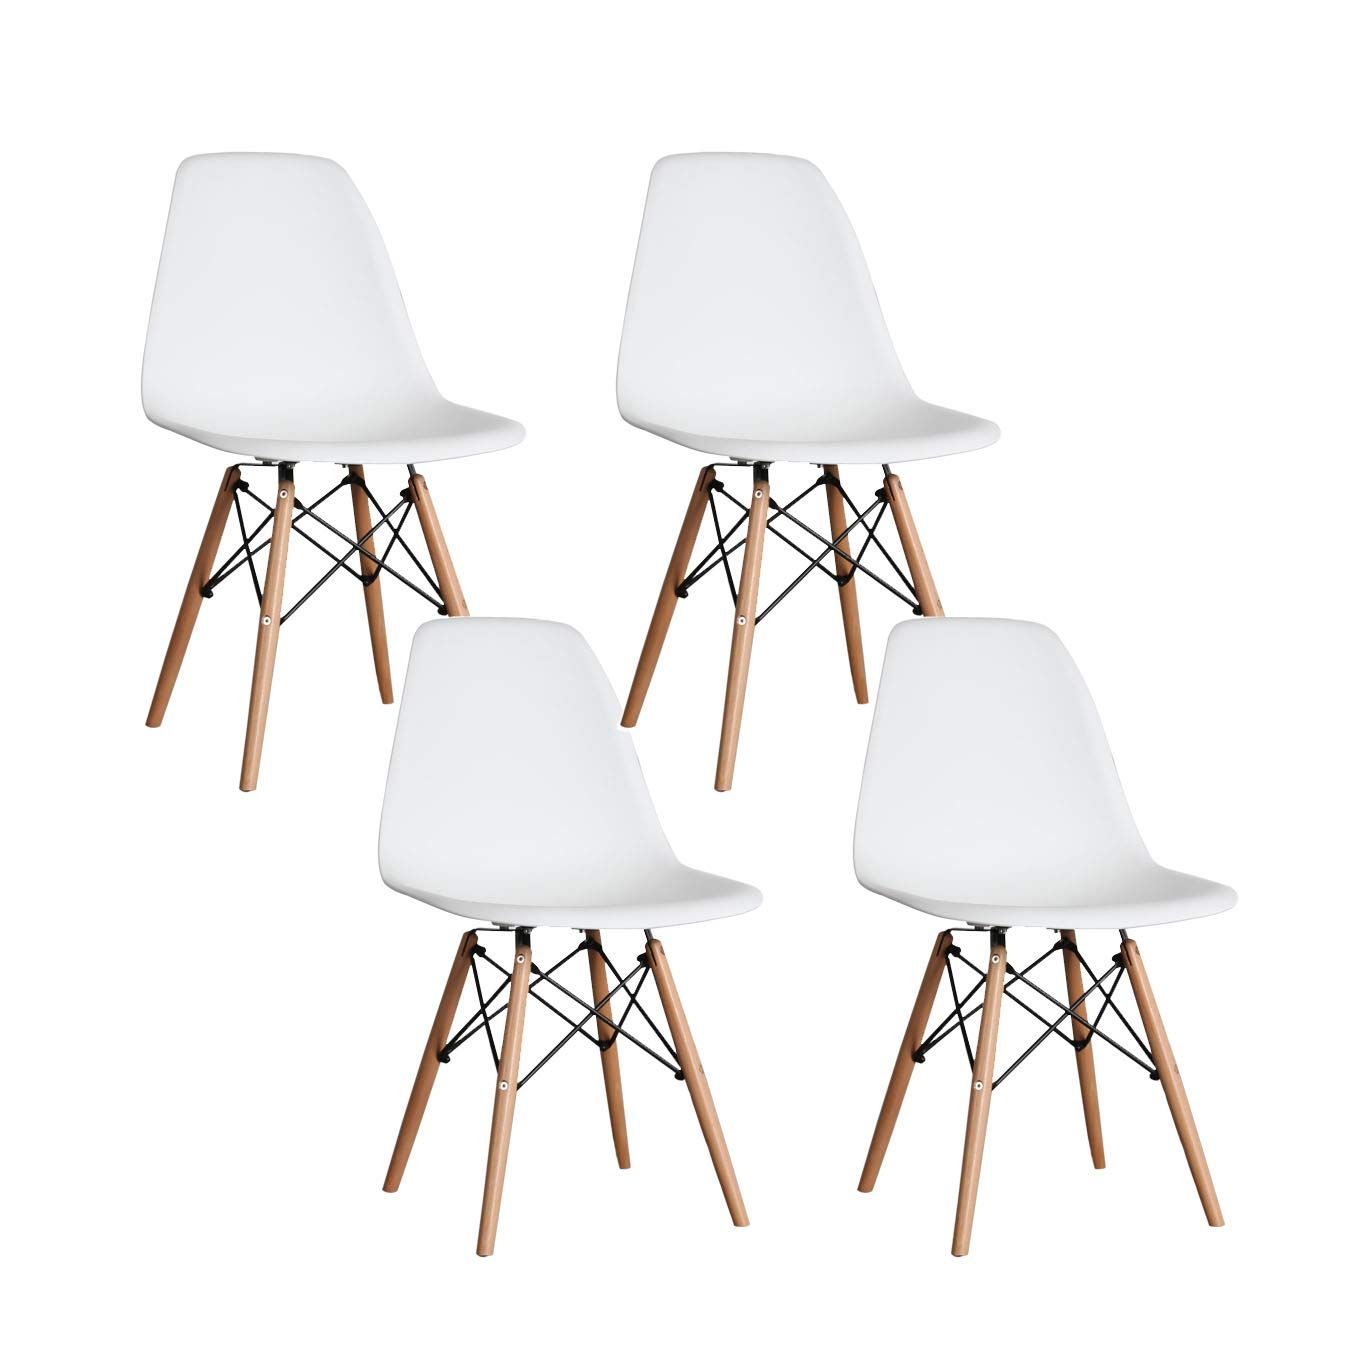 Yeefy Dining Chairs Modern Style Dining Chair Plastic Chair Set Of 4 White Chair Modern Dining Chairs Modern Chairs